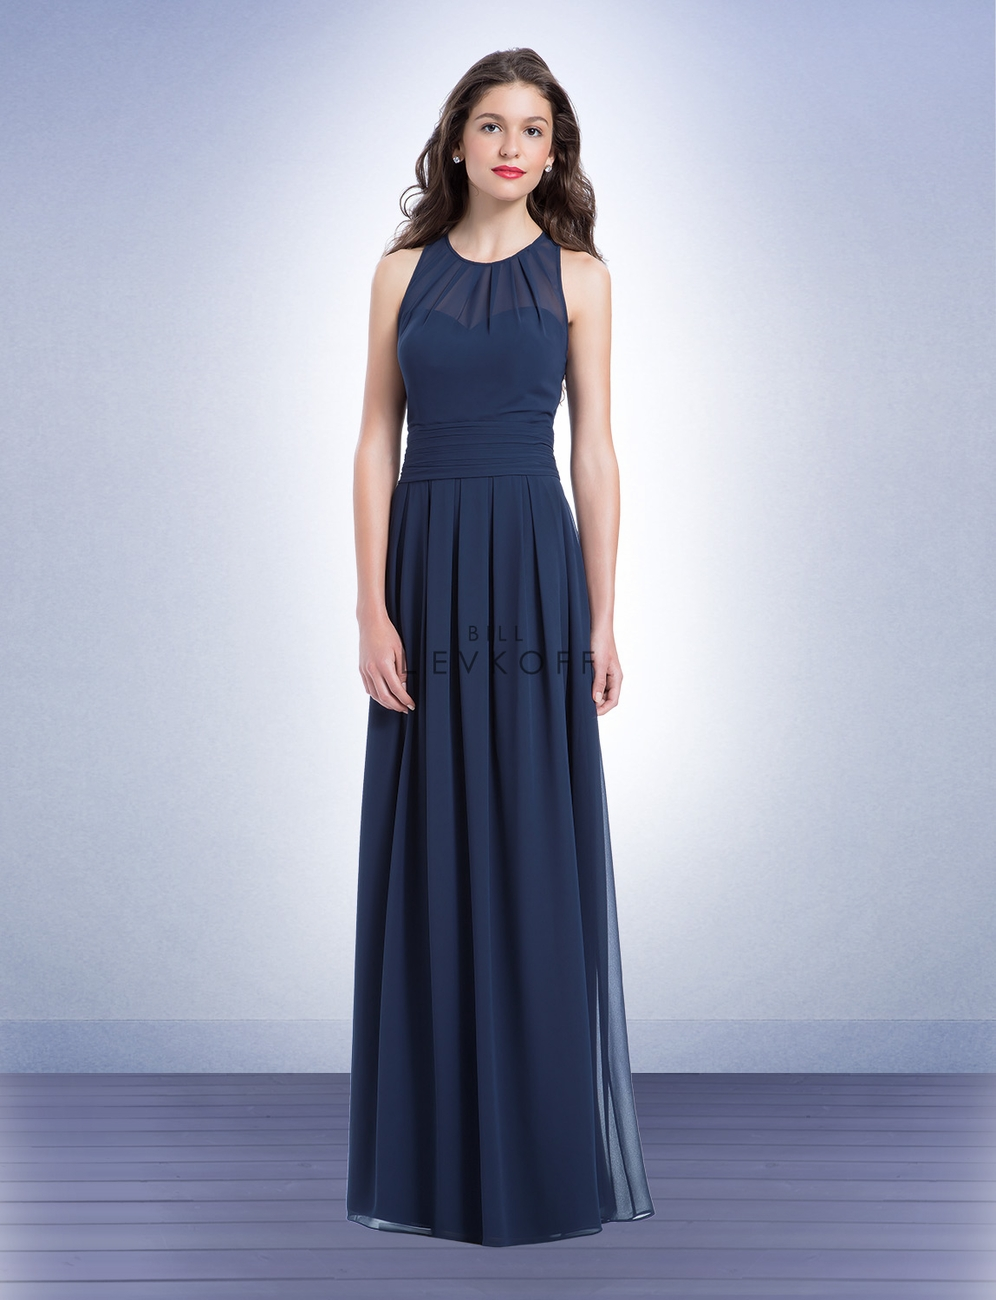 261271e0ae5f1 BILL LEVKOFF BRIDESMAID DRESSES|BILL LEVKOFF 1165|BILL LEVKOFF ...